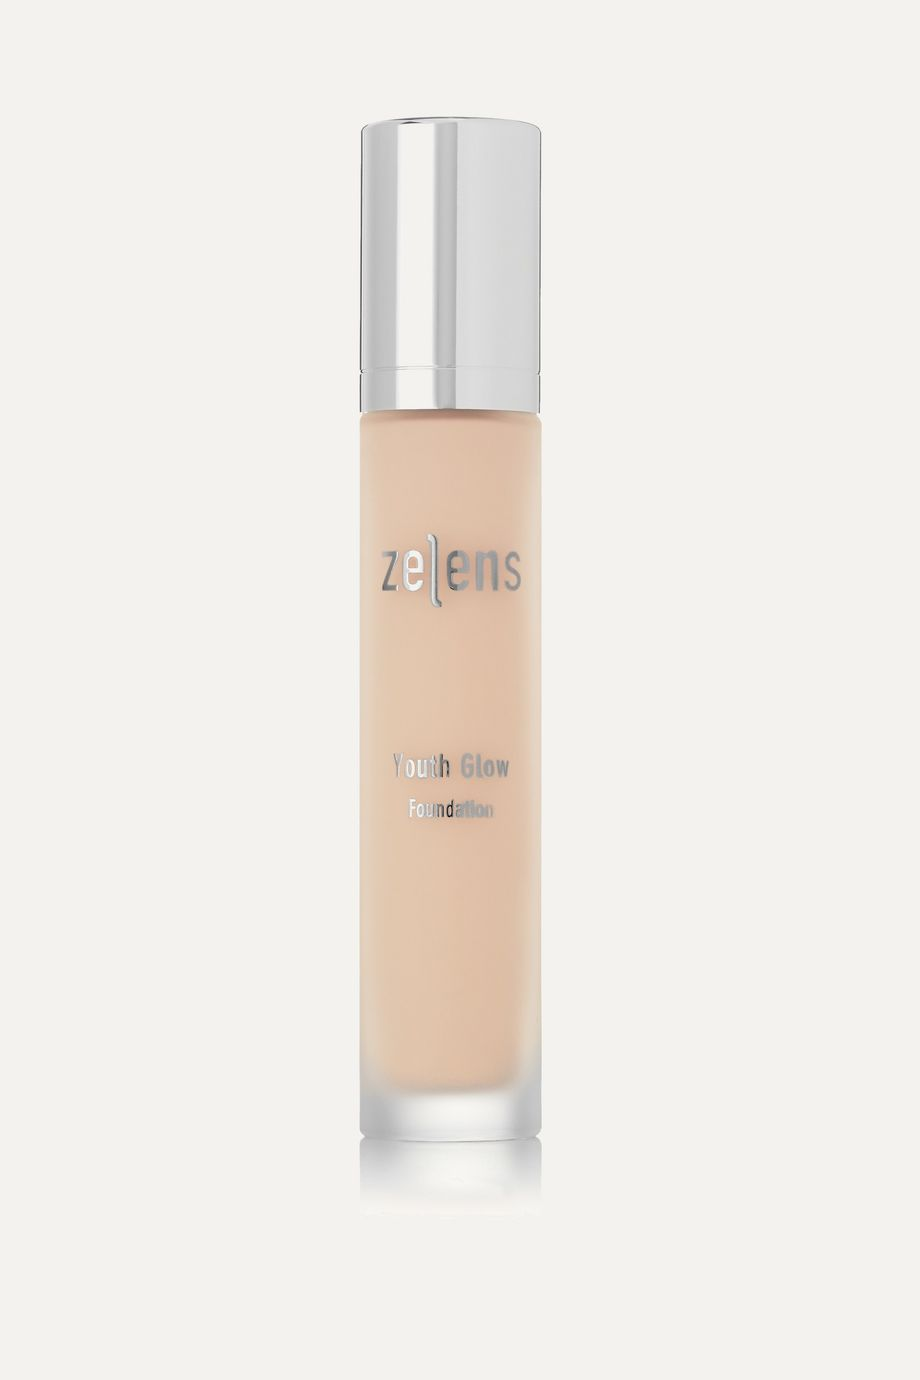 Zelens Youth Glow Foundation - Cameo, 30ml